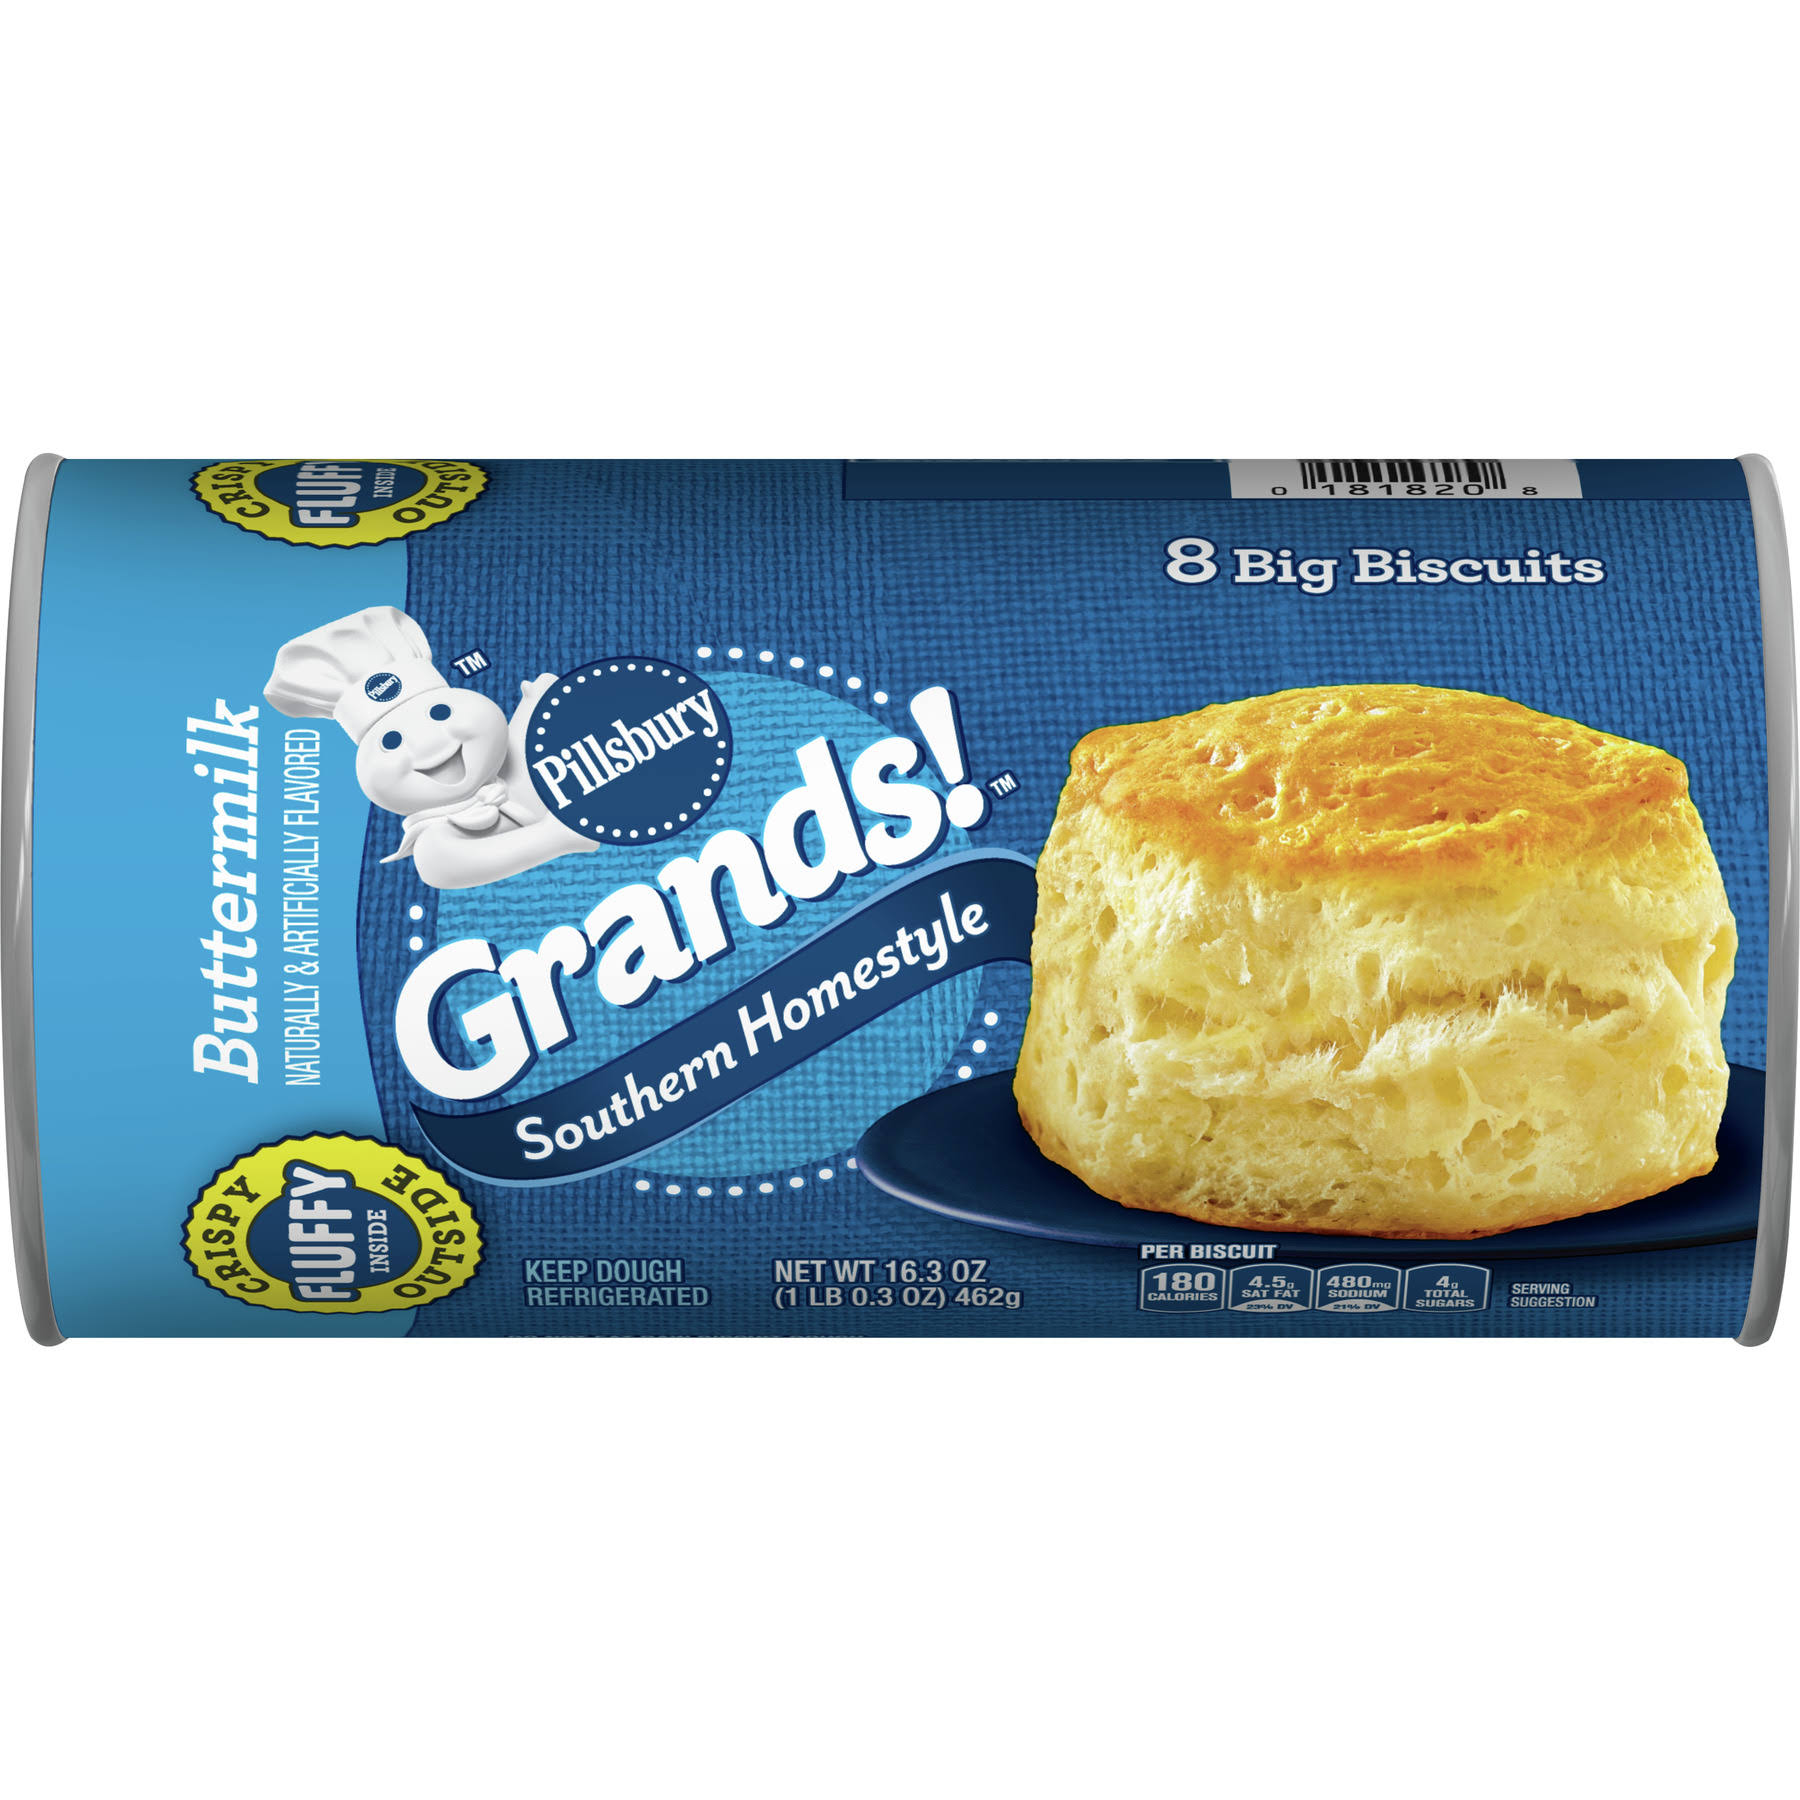 Pillsbury Grands Southern Homestyle Big Biscuits - Buttermilk, 462g, 8 Big Biscuits